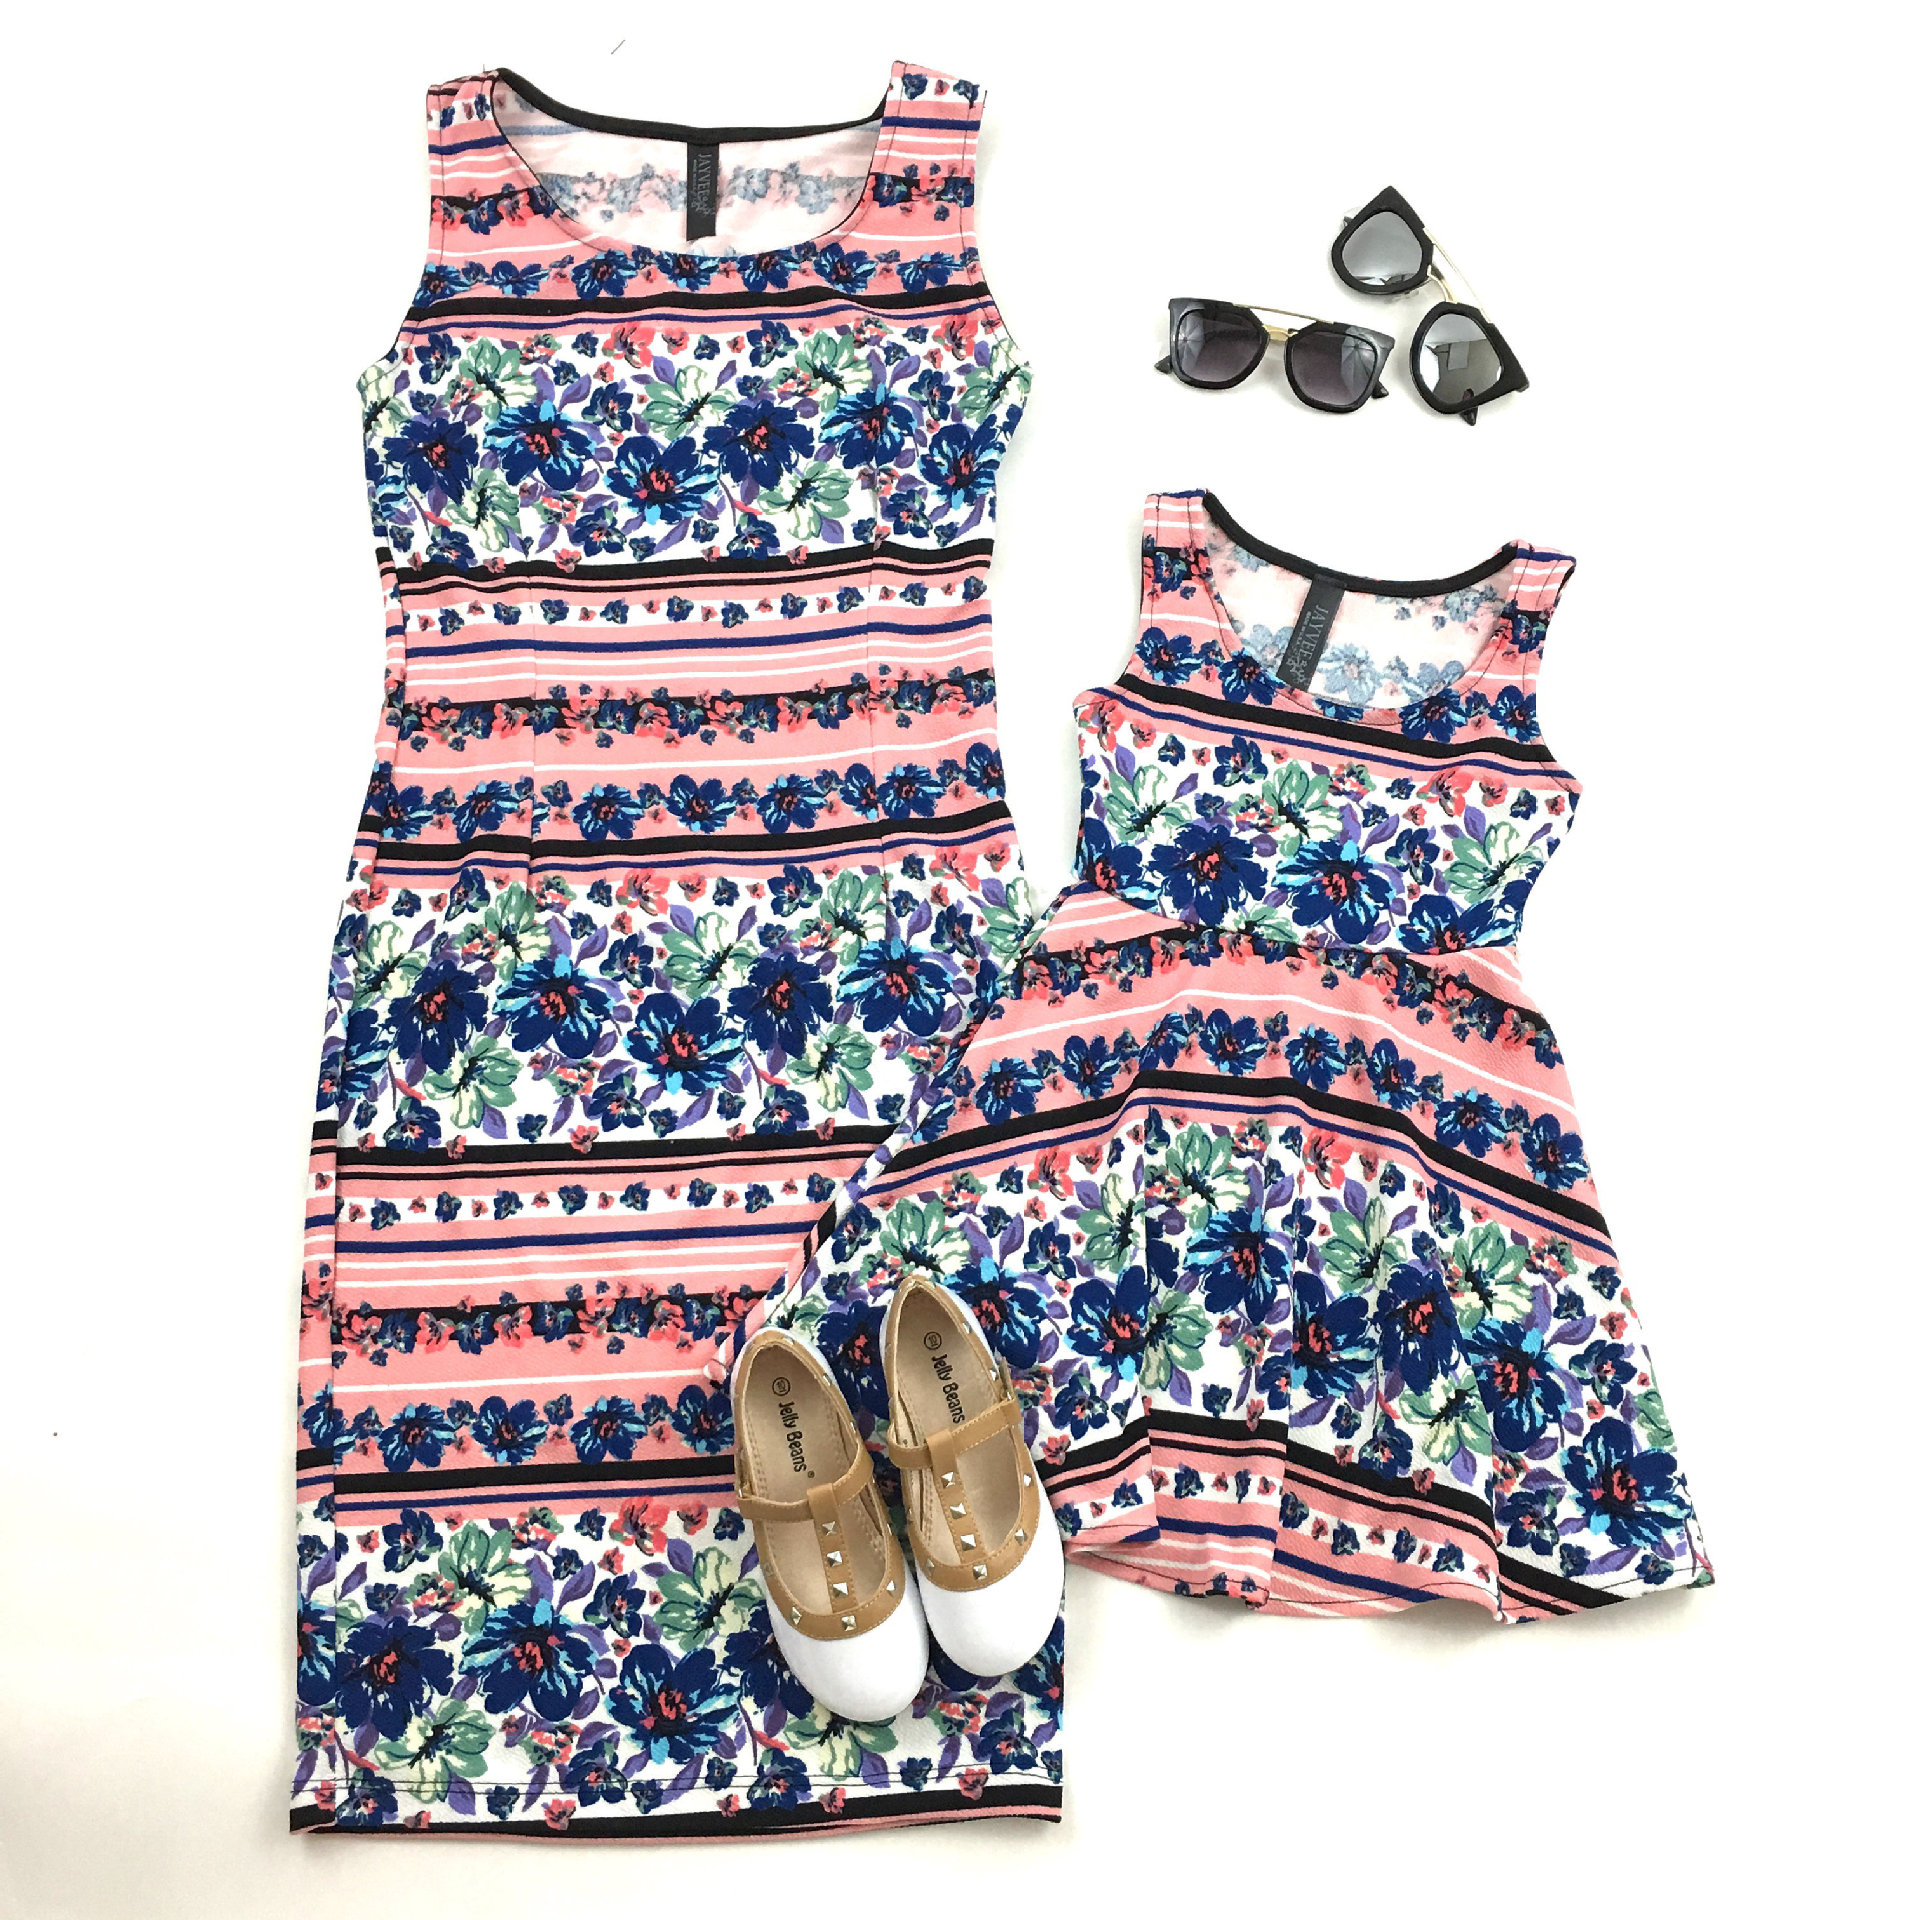 2018 Summer Family Clothing Mother Daughter Dresses Mom and Daughter Dress for Kids and Women Family Matching Outfits Dress 2018 mommy and me family matching mother daughter fish print dresses clothes mom and daughter dress kids parent child outfits